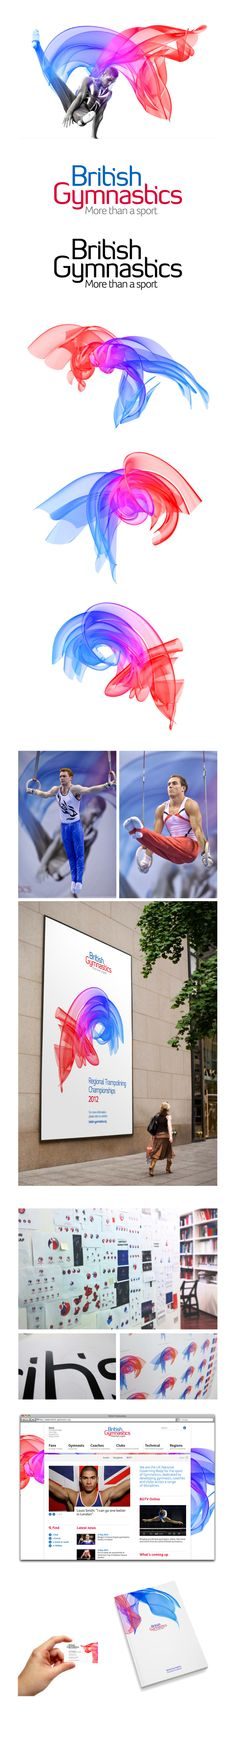 British Gymnastics | Photography: Giles Revell, CGI Artist: Ben Koppel | Inspiring a new generation of participants and fans.